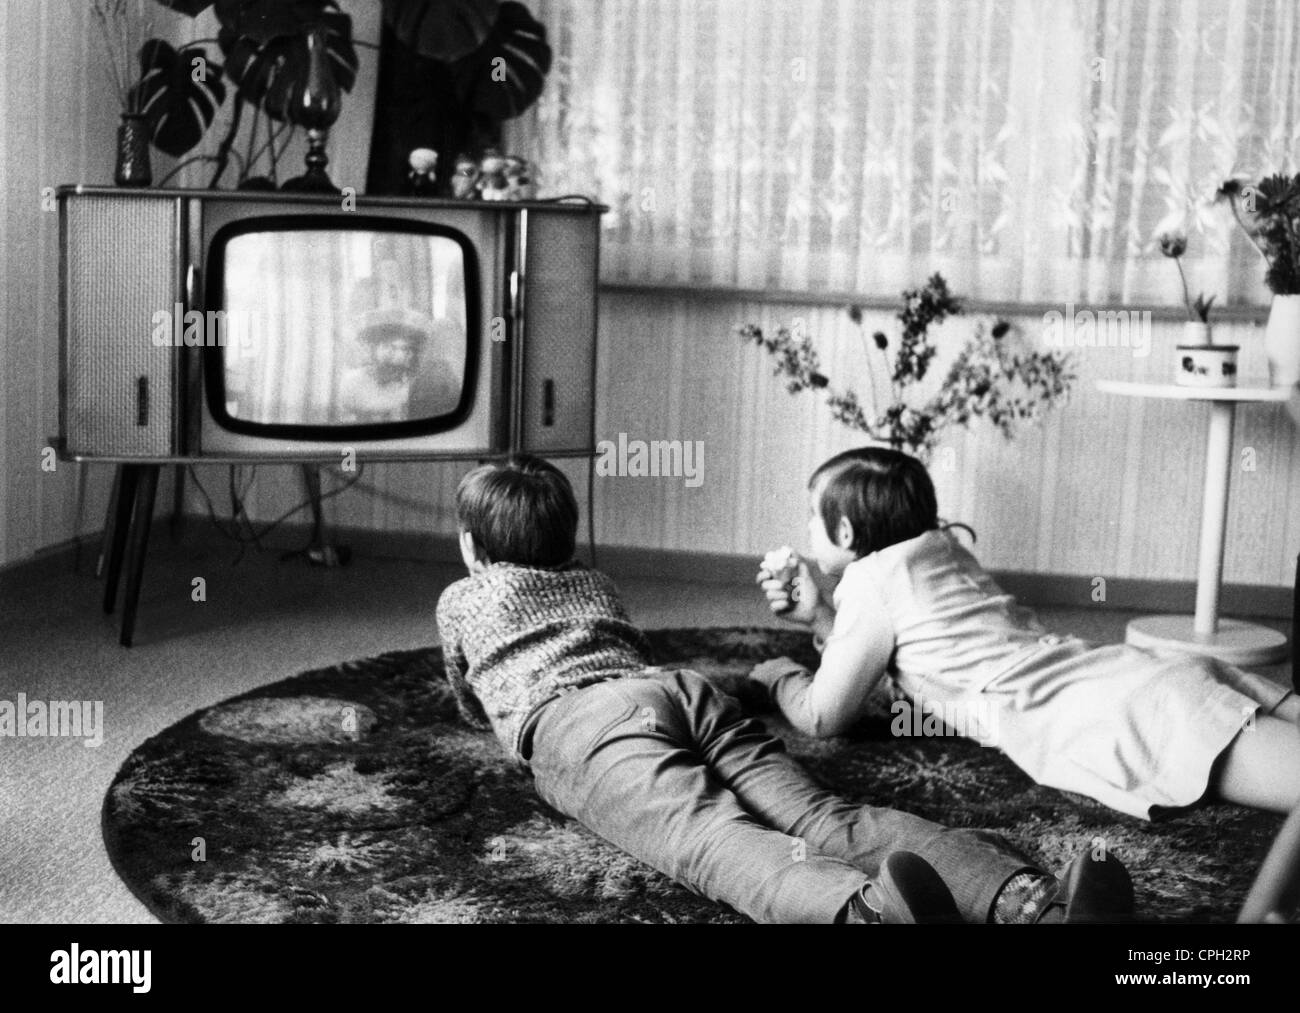 black kids watching tv. stock photo - broadcast, television, children watching tv, april 1972, 20th century, historic, historical, 1970s, 70s, watch televis black kids tv s